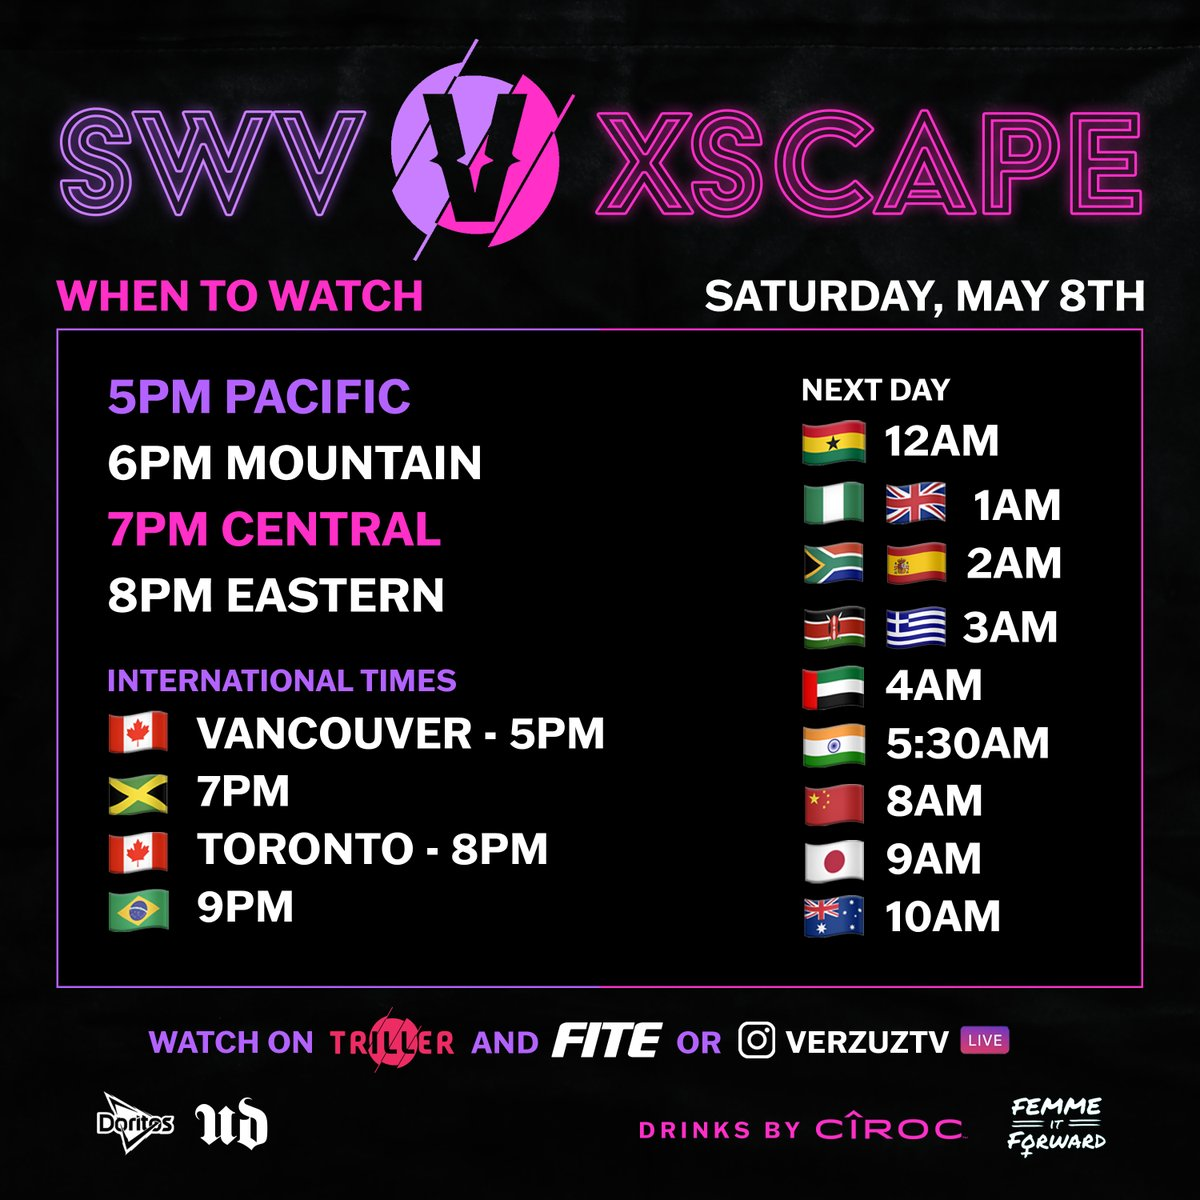 WHEN/HOW to watch SWV vs Xscape on SATURDAY NIGHT 🔥 Share/tag a friend so they don't miss out! #TeamDoritos   Have a smart TV? Download the @FiteTV app for the full experience!  Happy Mother's Day from @UrbanDecay! #VERZUZ @FemmeItForward  Drinks by @Ciroc https://t.co/xiXB9qRvnP https://t.co/9ssTUTU78G